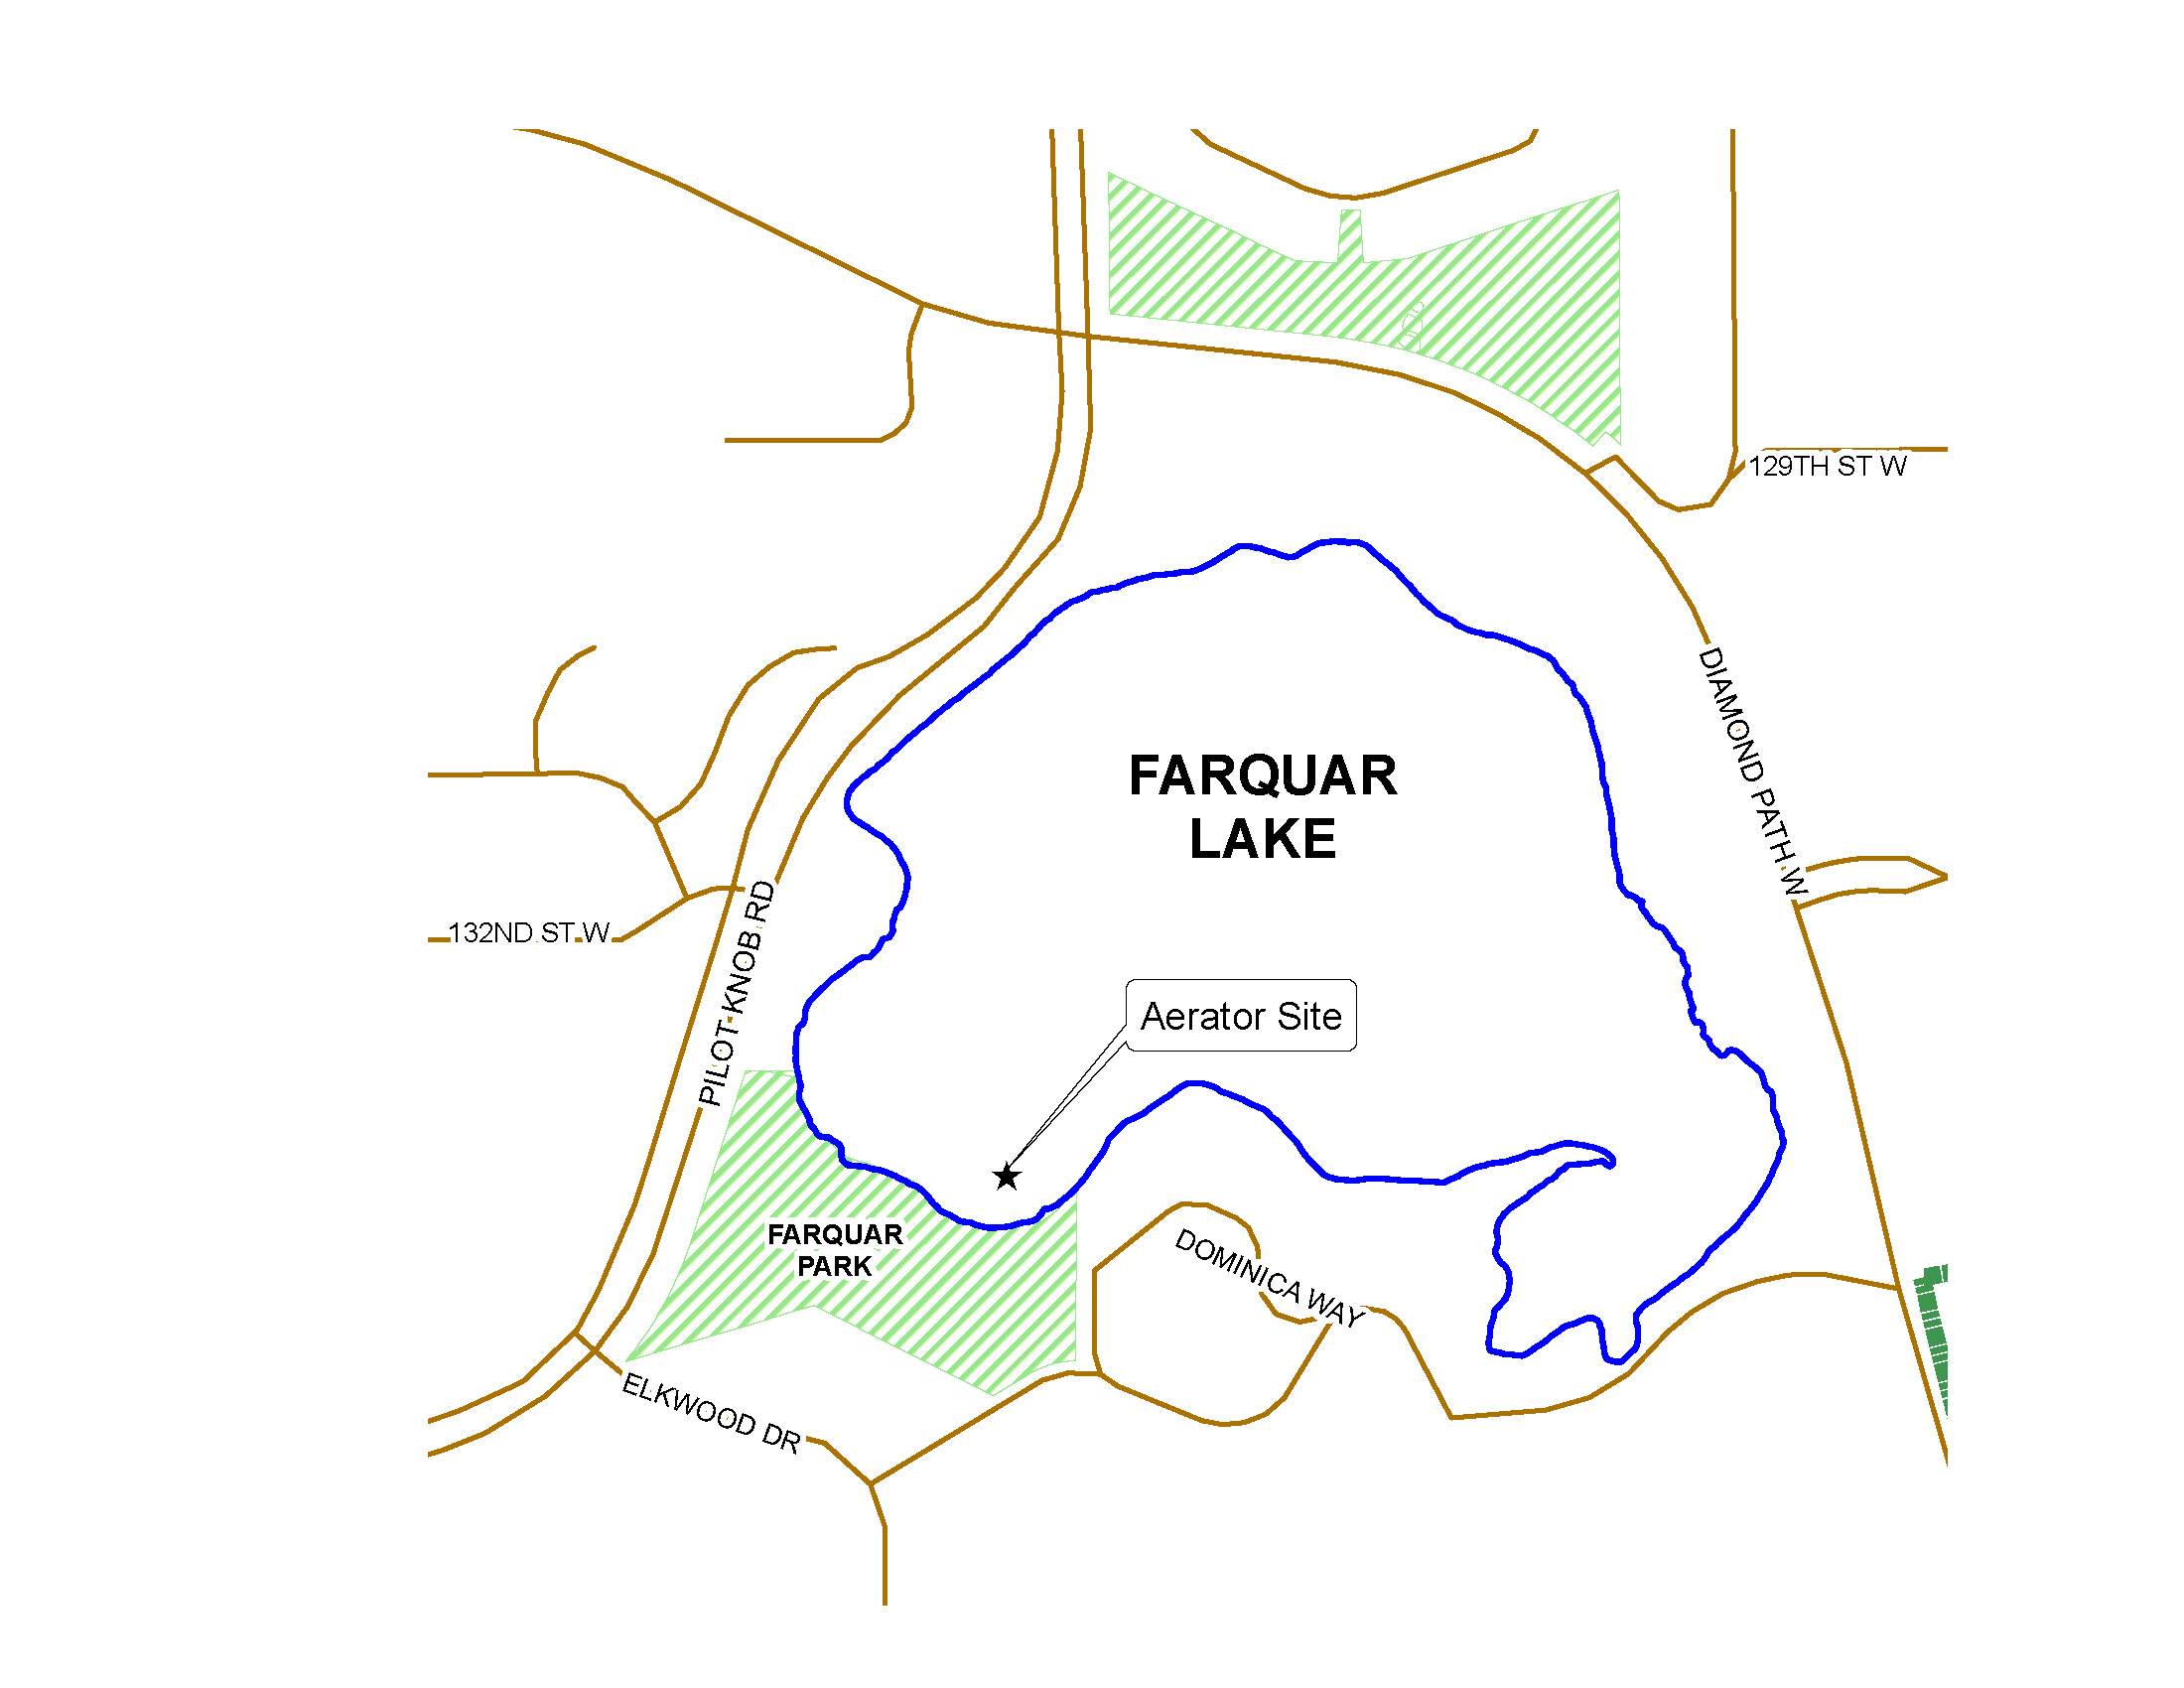 Farquar Lake Aeration